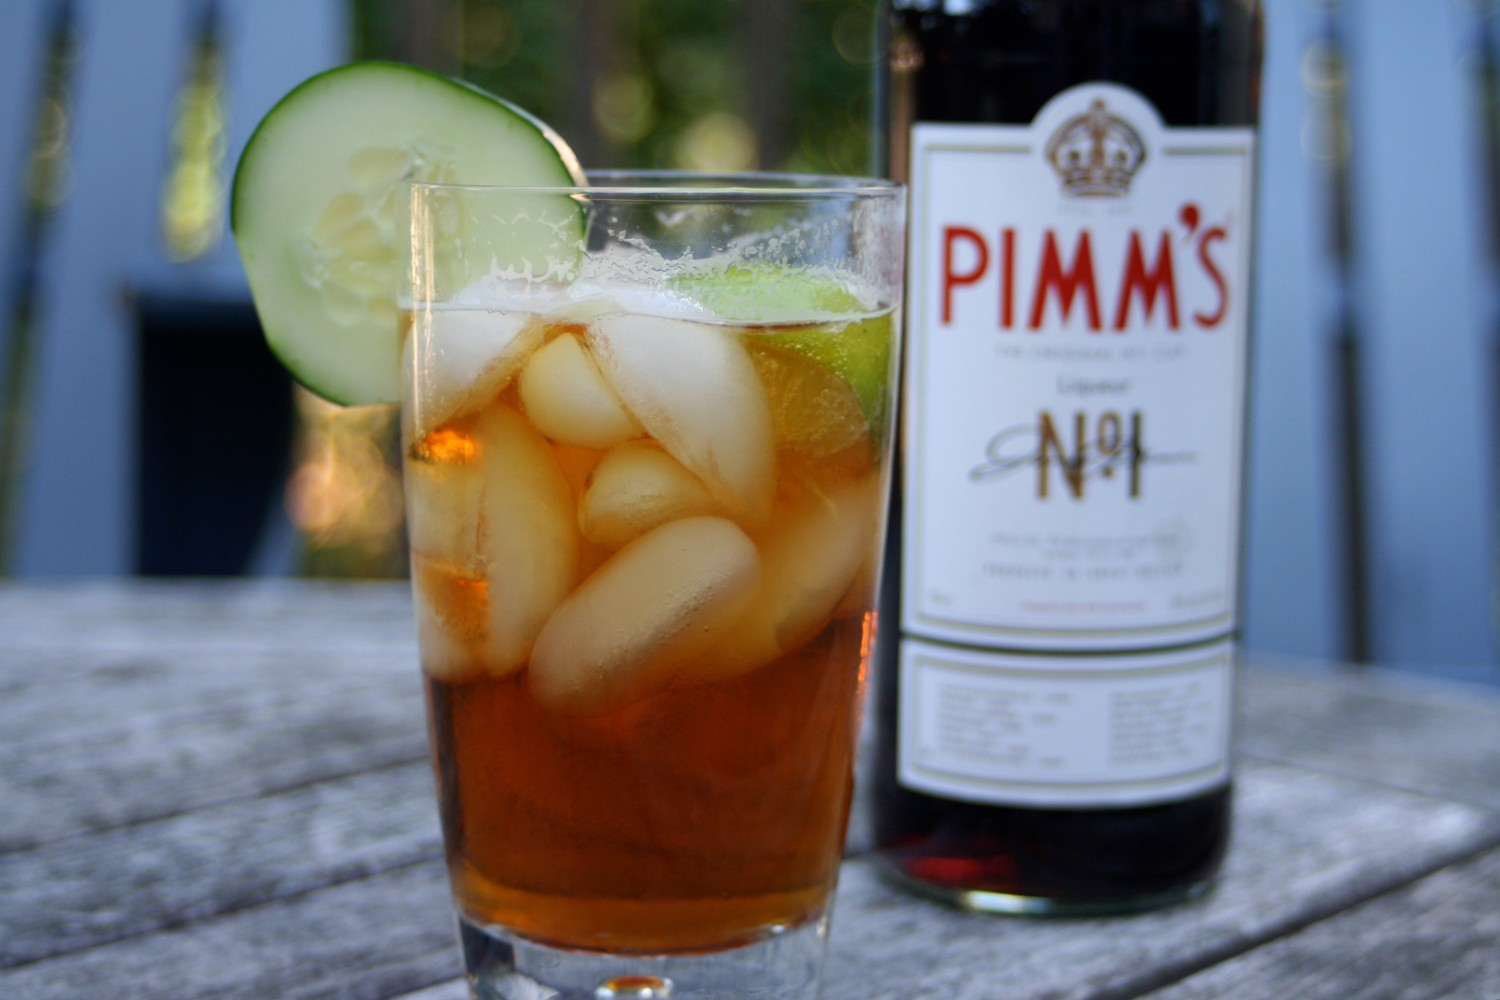 Pimms bottle and full glass - Credit to Whitney